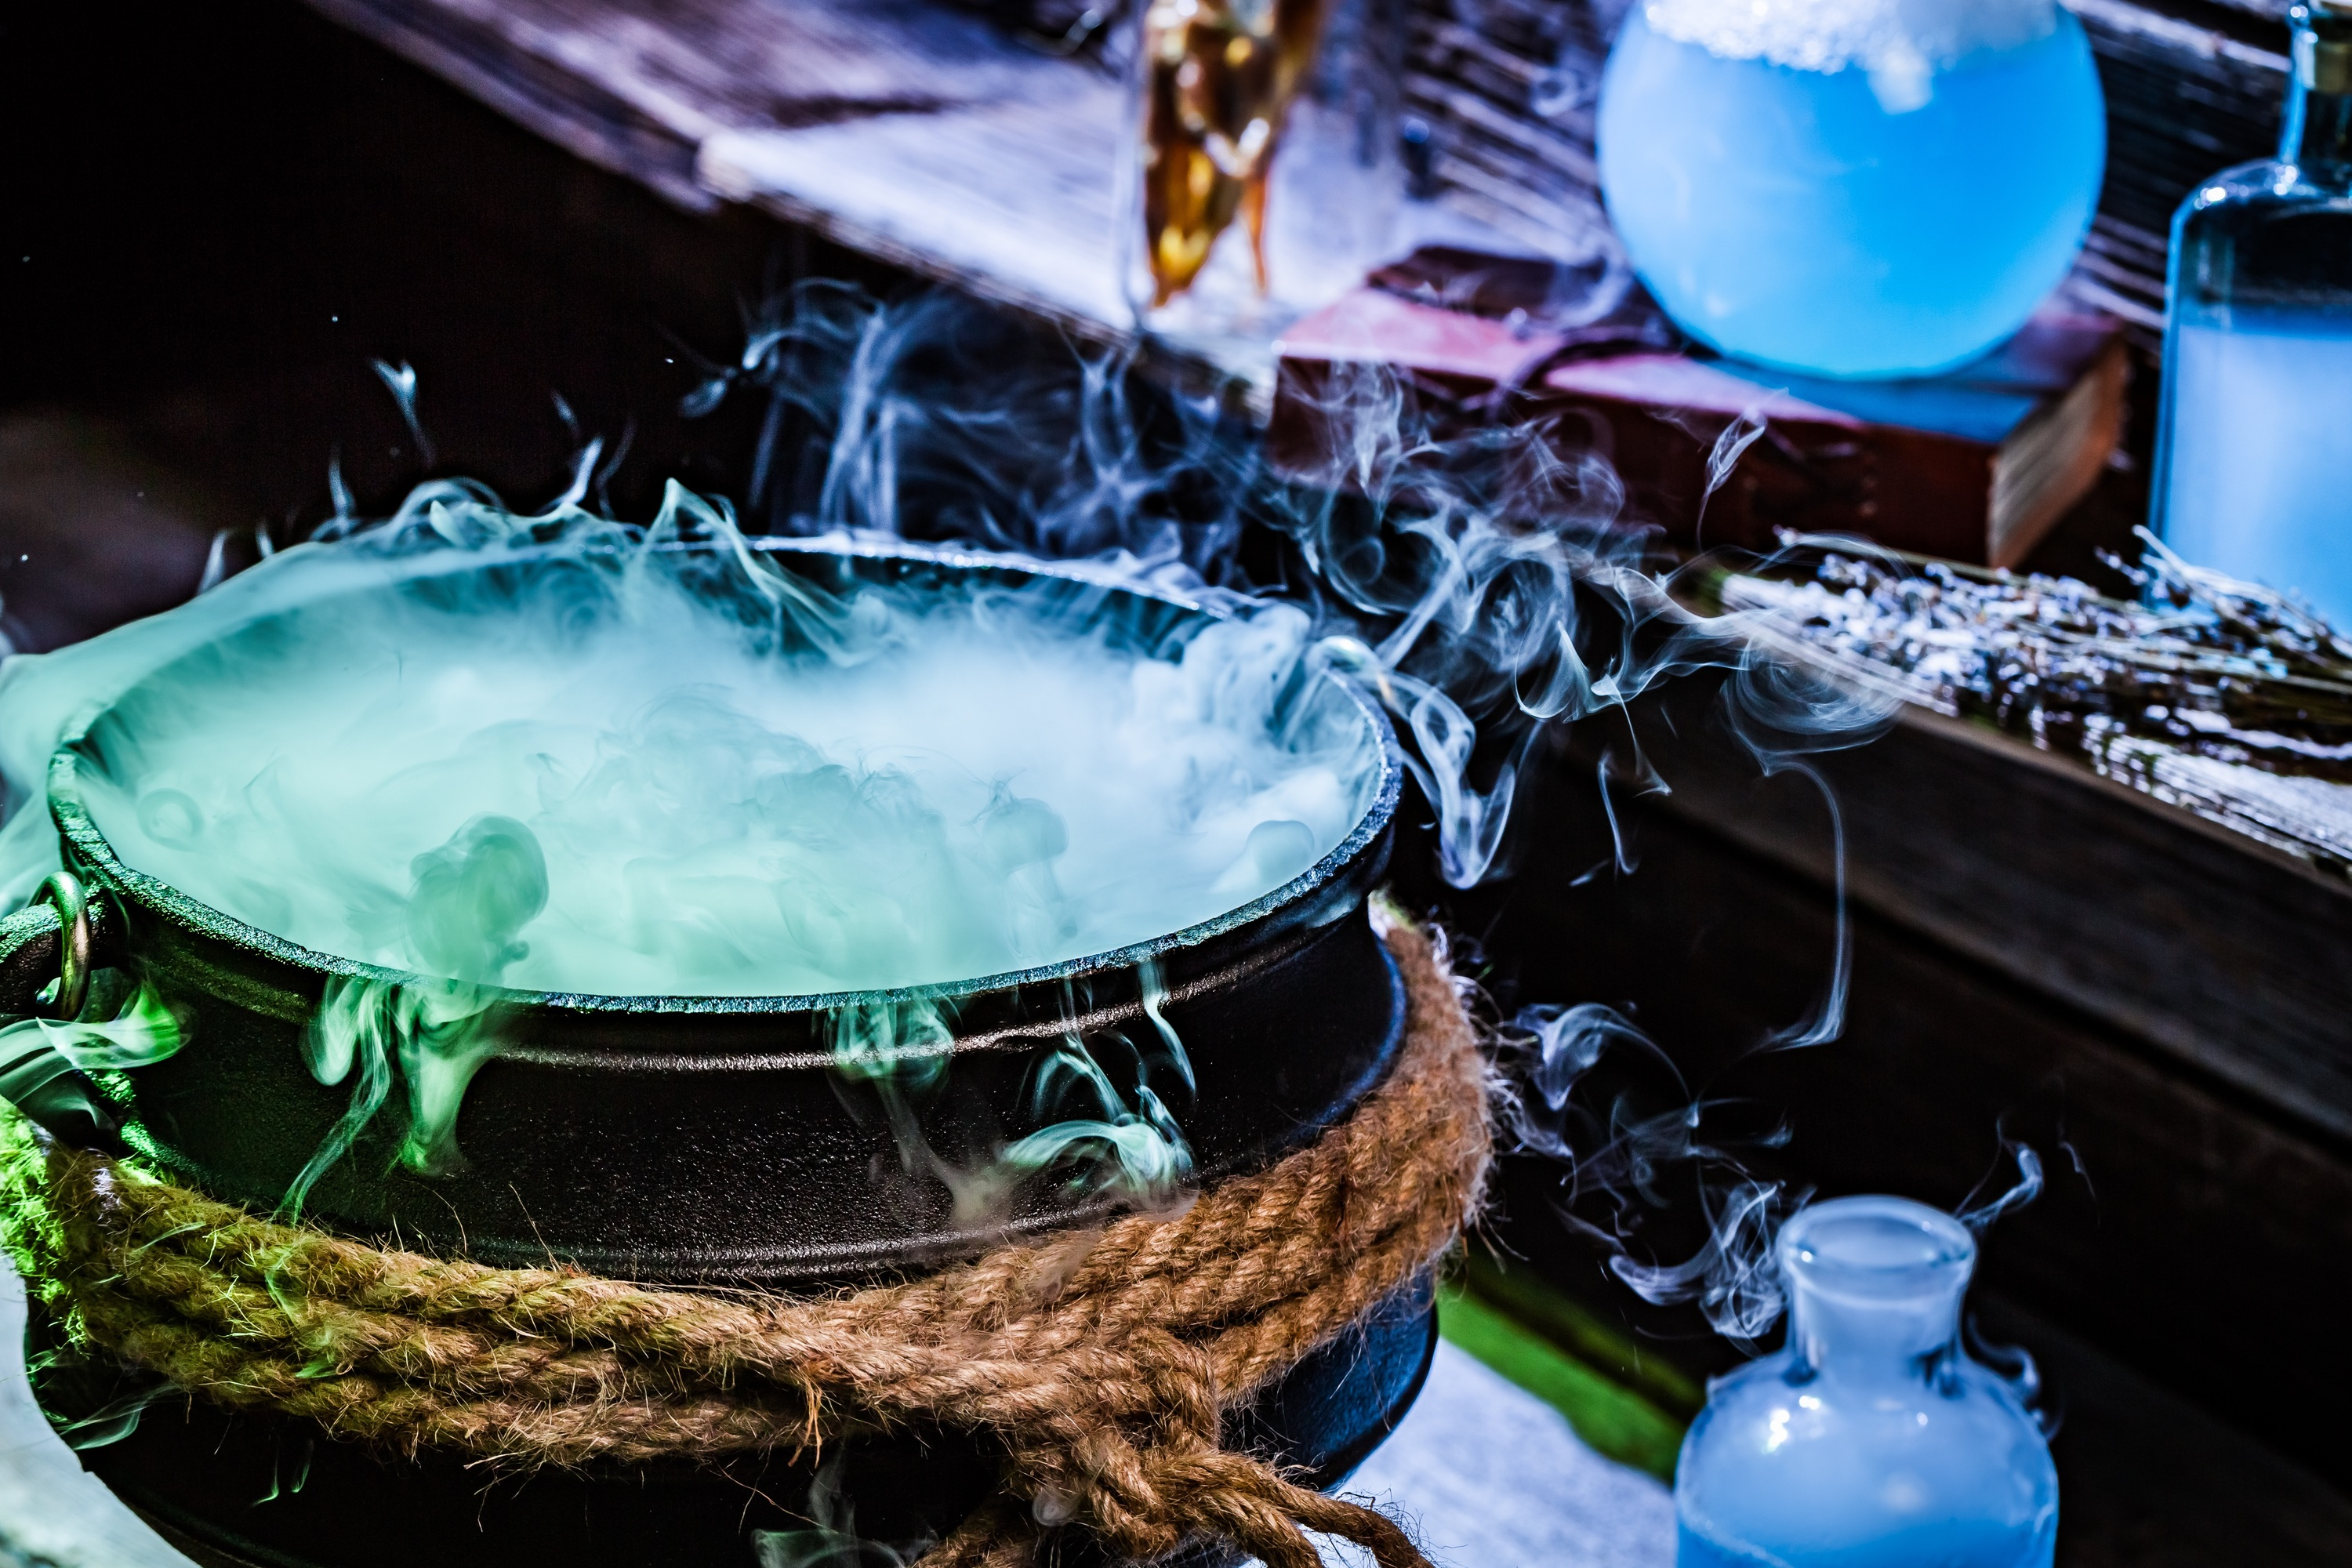 A stock image of a bubbling cauldron.